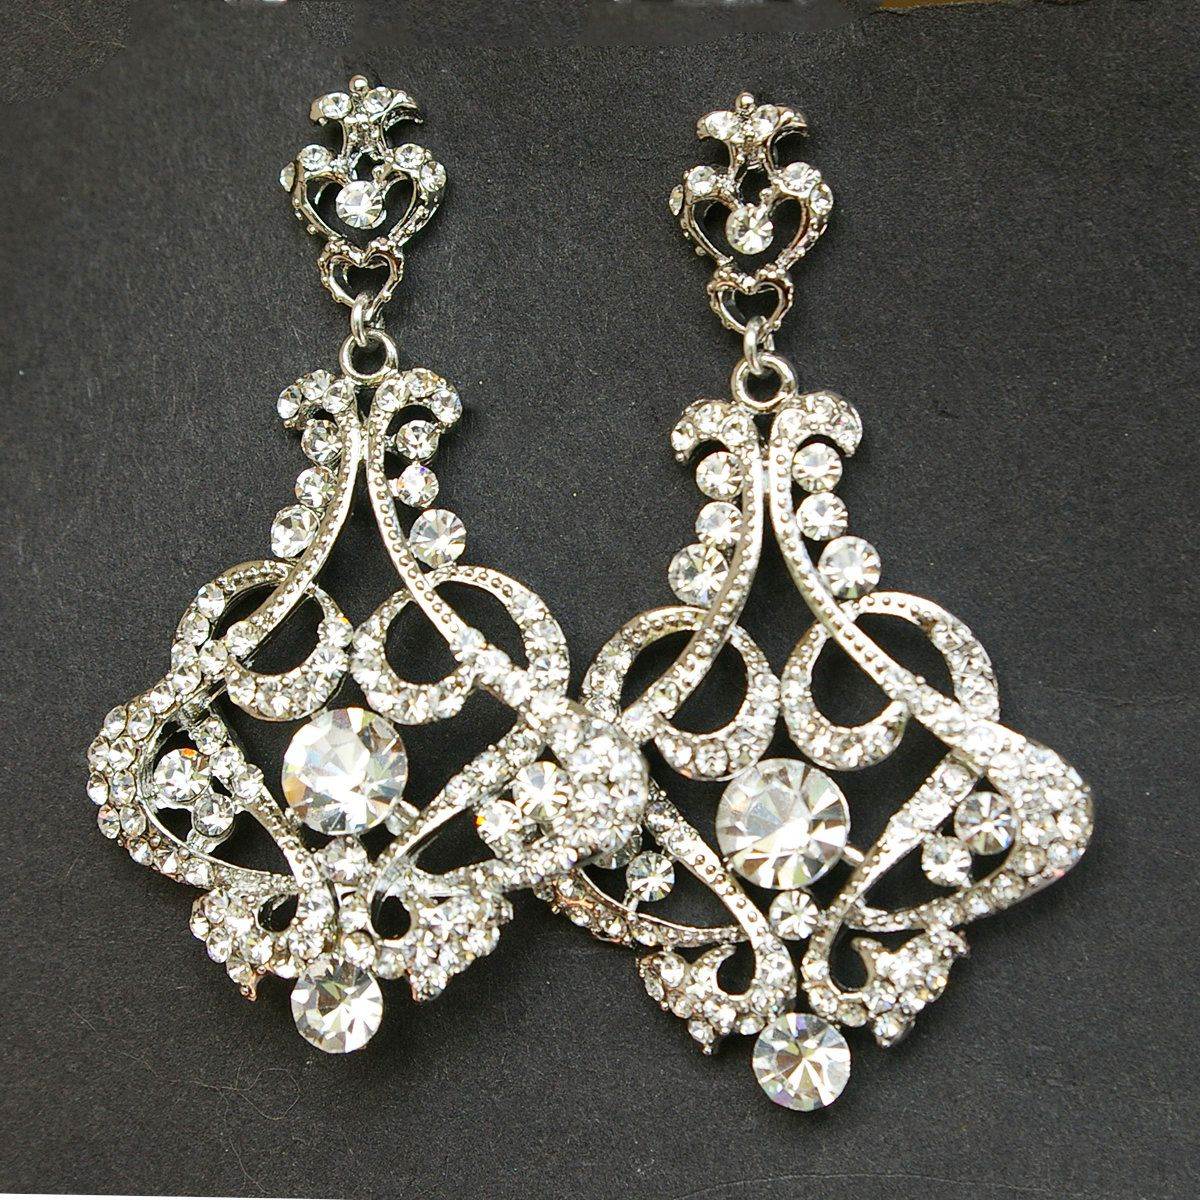 The cressida earrings feature rhinestone crest shaped posts jewelry rings and things crystal chandelier bridal earrings vintage style chandelier wedding earrings victorian style statement bridal earrings cressida mozeypictures Image collections